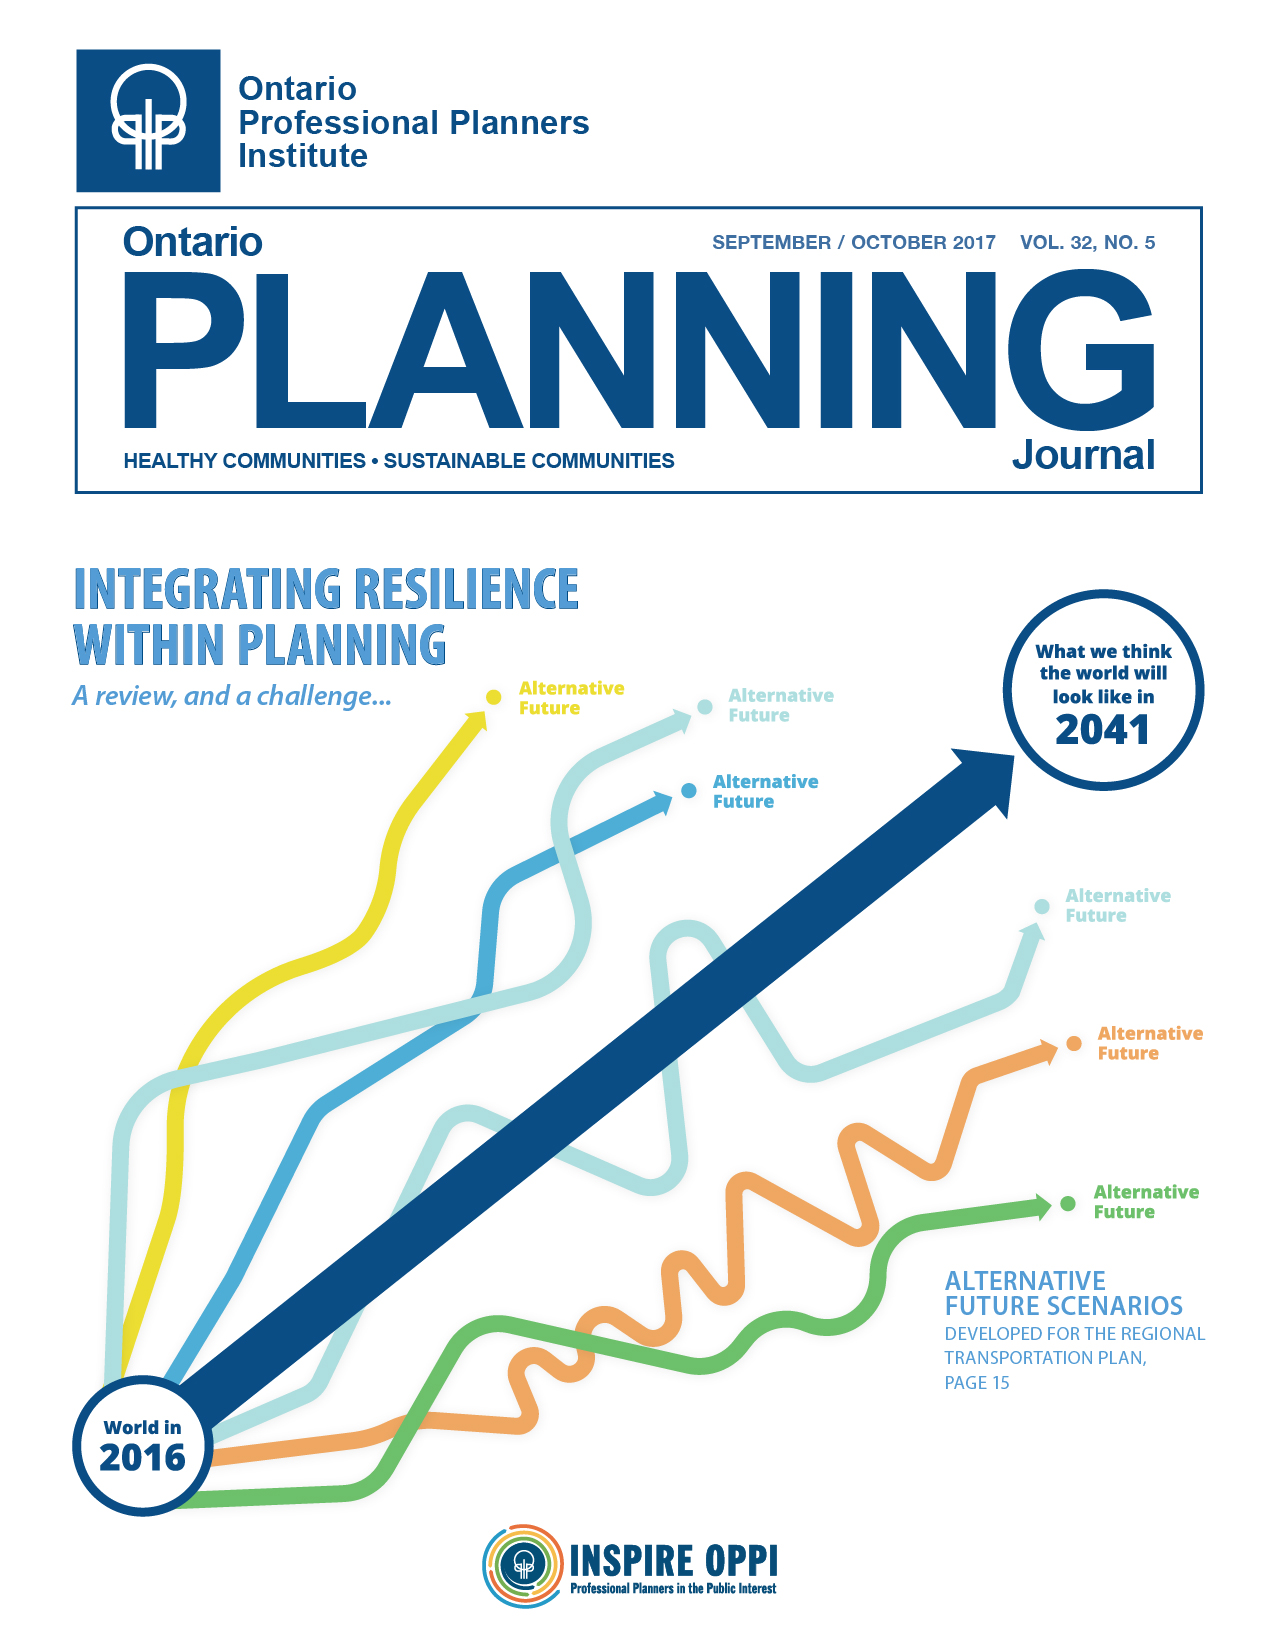 Graphic Featured on Ontario Planning Journal